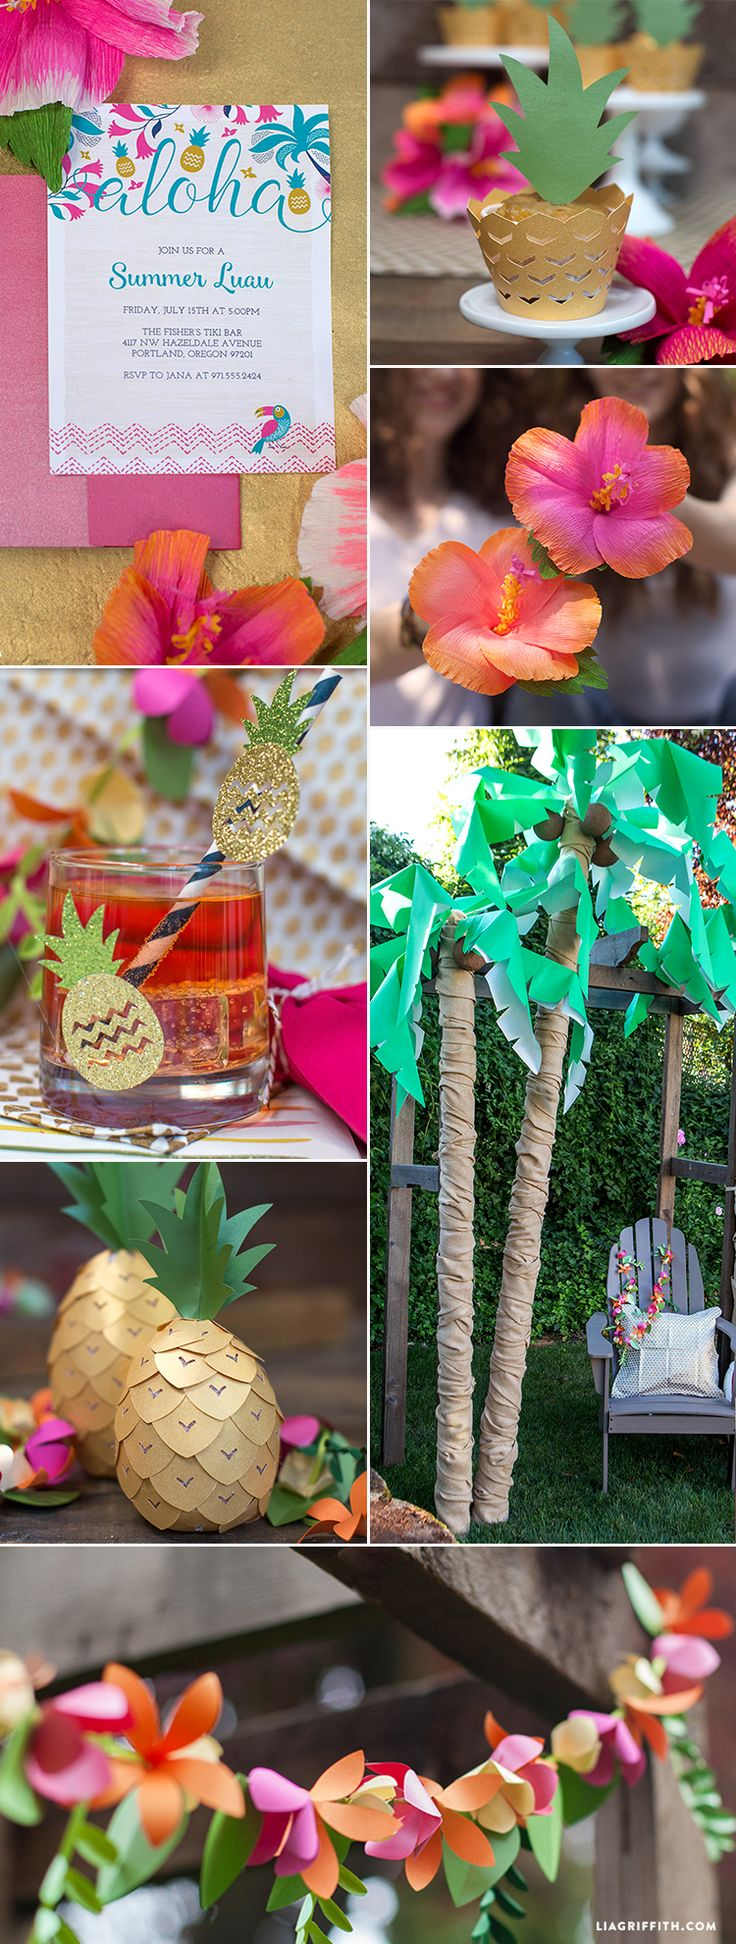 Create your own show stopping summer party with this collection of Luau party ideas including printables, projects and tutorials from Lia Griffith.